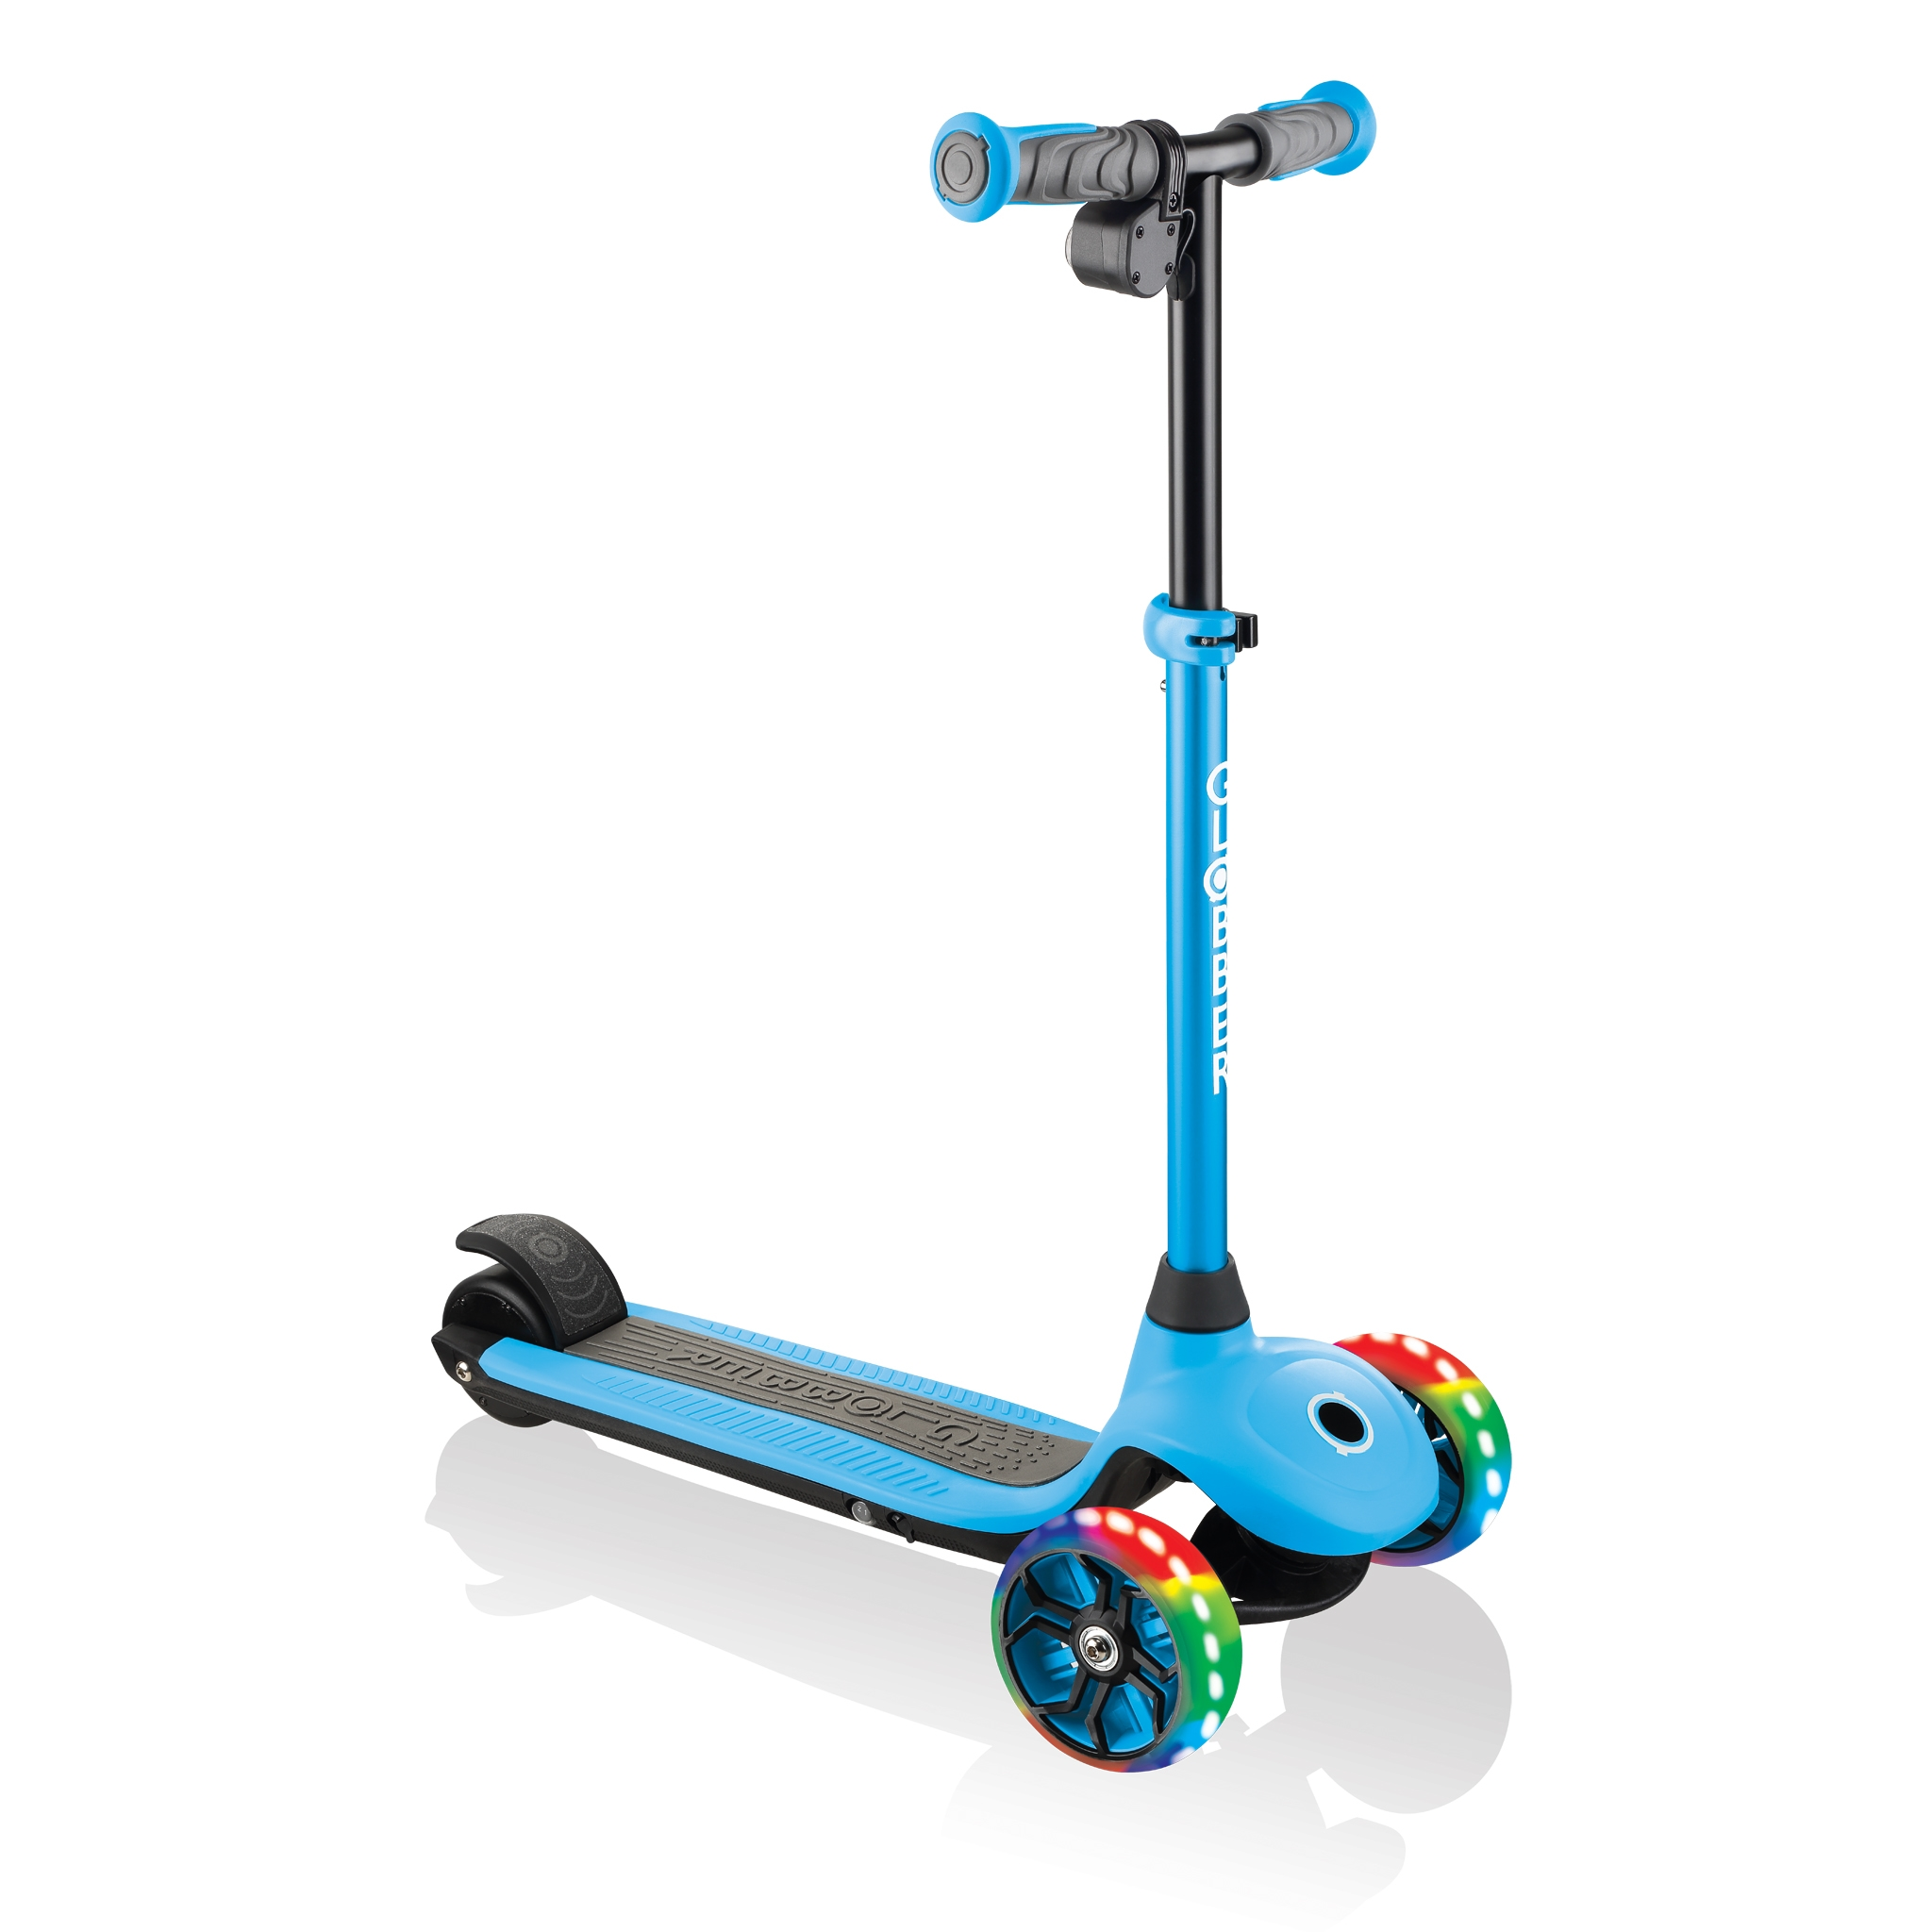 Globber-ONE-K-E-MOTION-4-award-winning-3-wheel-electric-scooter-for-boys-and-girls-with-80W-hub-motor_sky-blue